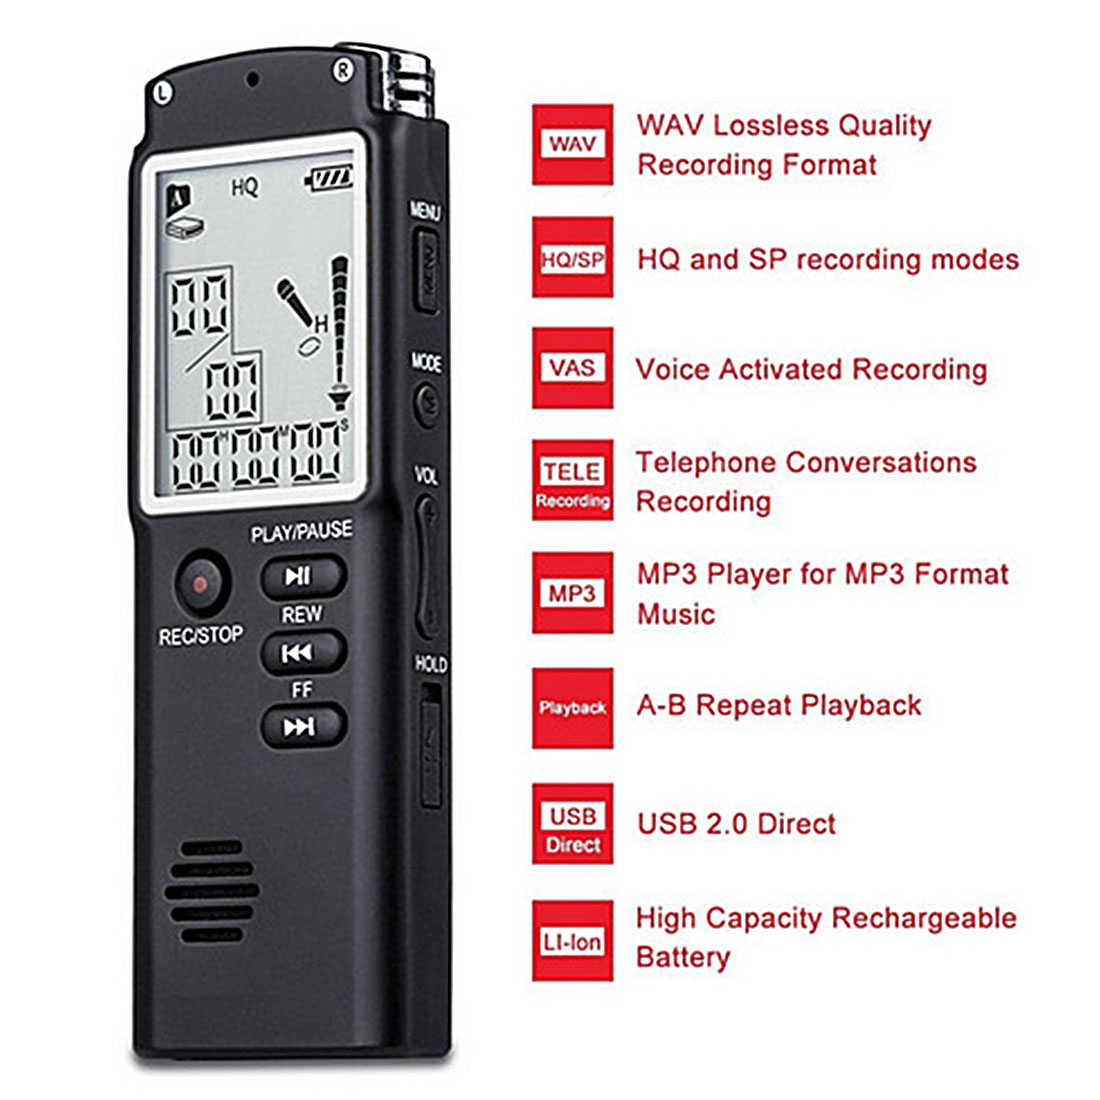 Marsnaska 8GB Voice Recorder USB Professional 96 Hours Dictaphone Digital Audio Voice Recorder With for WAV,MP3 Player